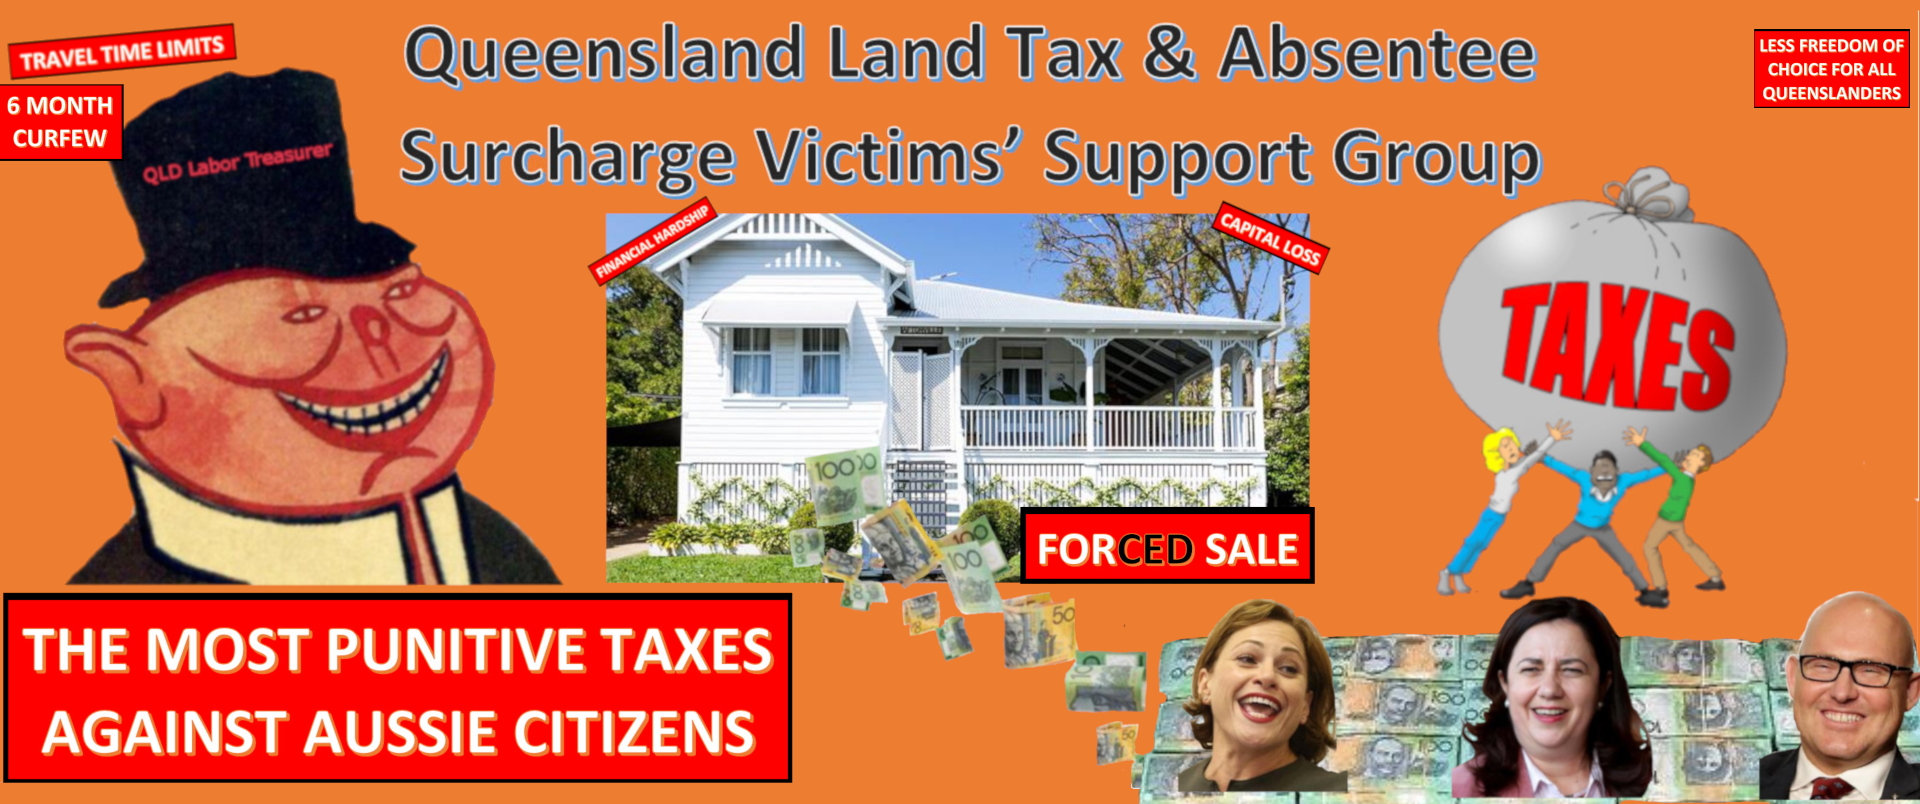 Expats owning property in Queensland Australia - Land tax - Home